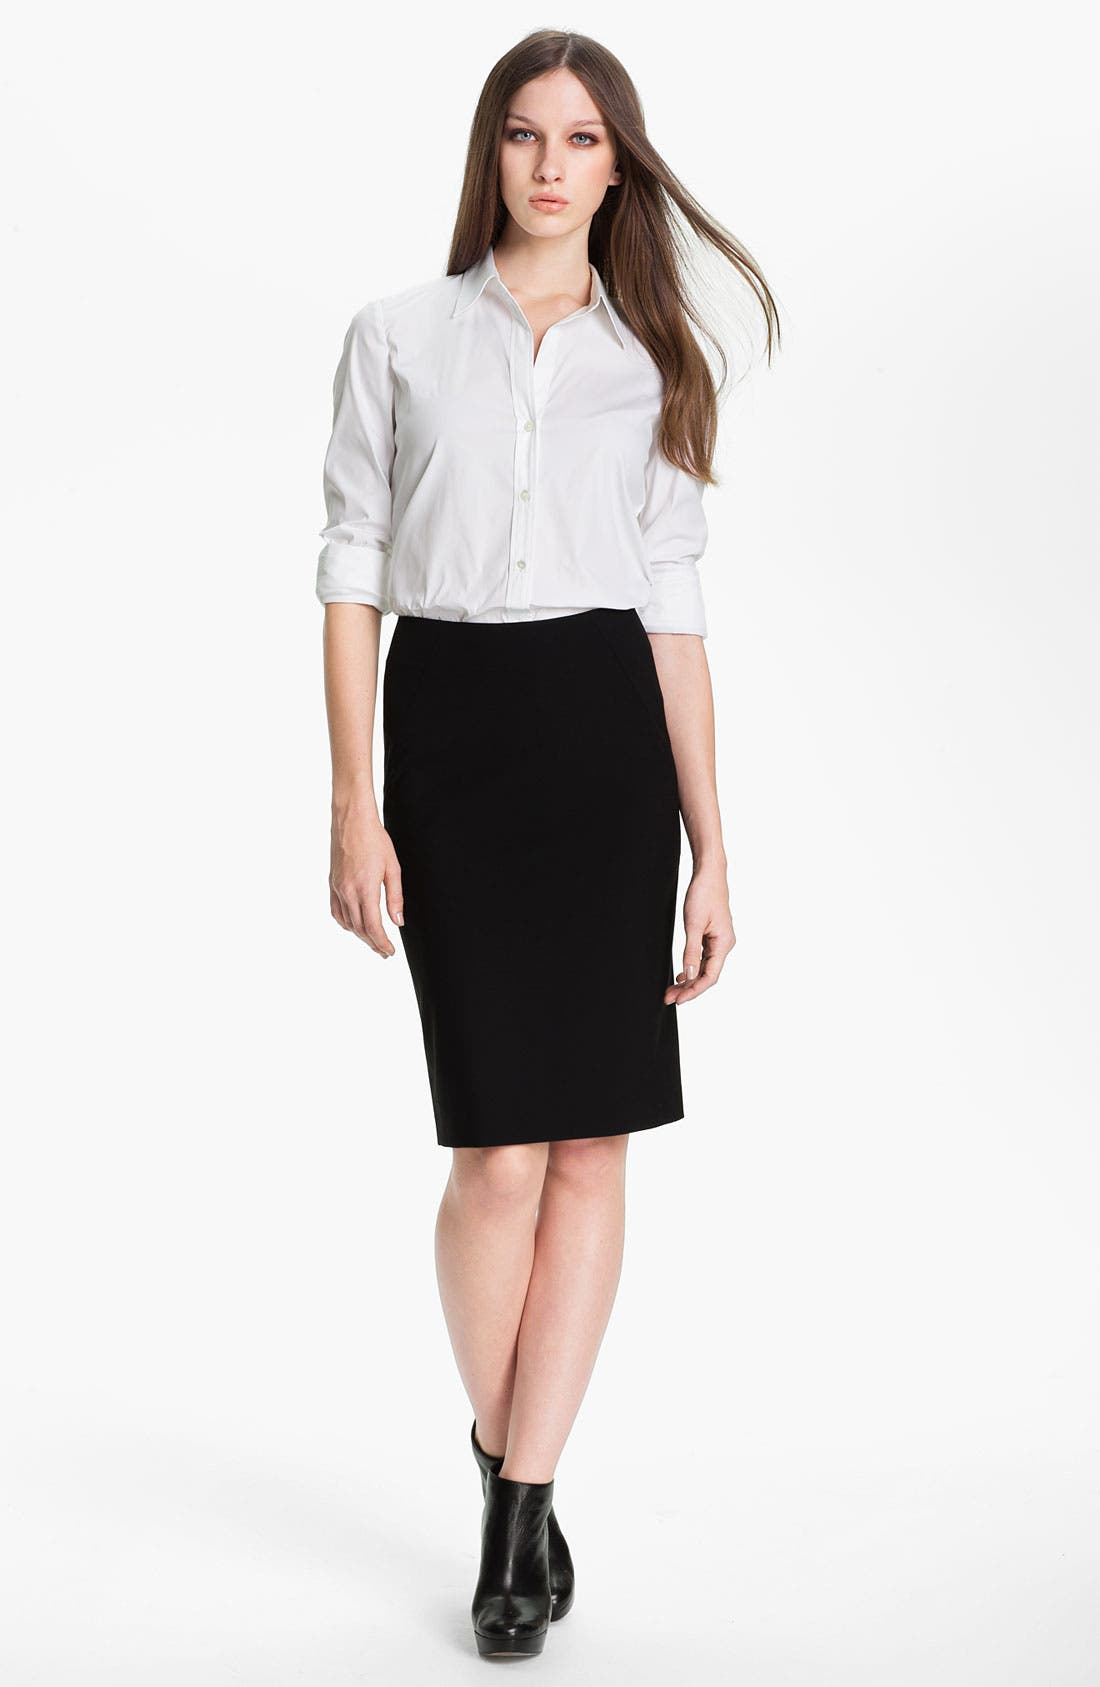 'Golda - Tailor' Pencil Skirt,                             Main thumbnail 1, color,                             Black